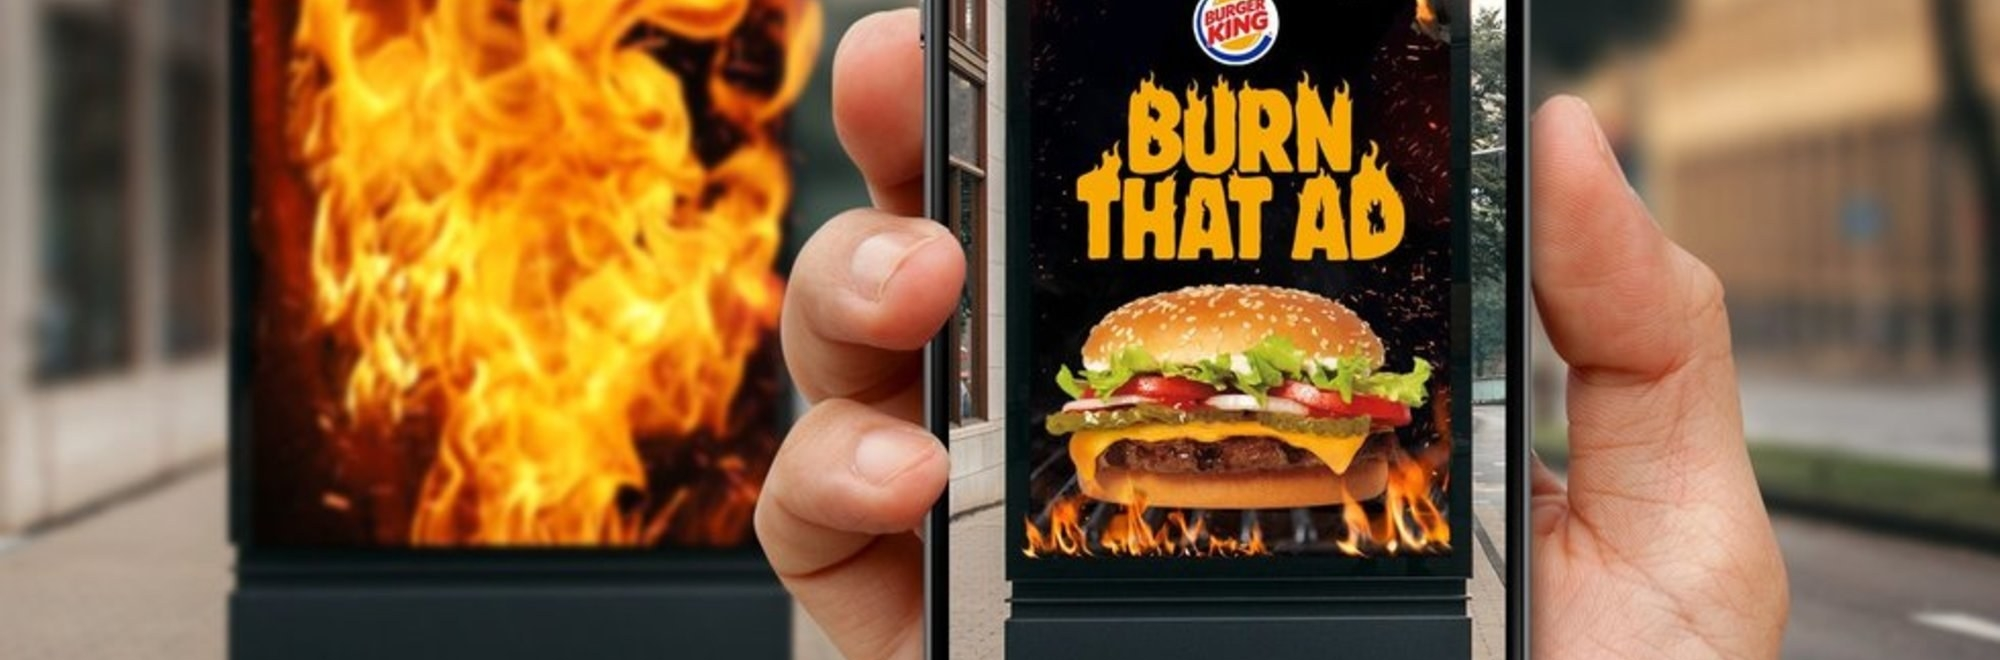 Burger King's Burn That Ad campaign: One idea but here are two contrasting reviews